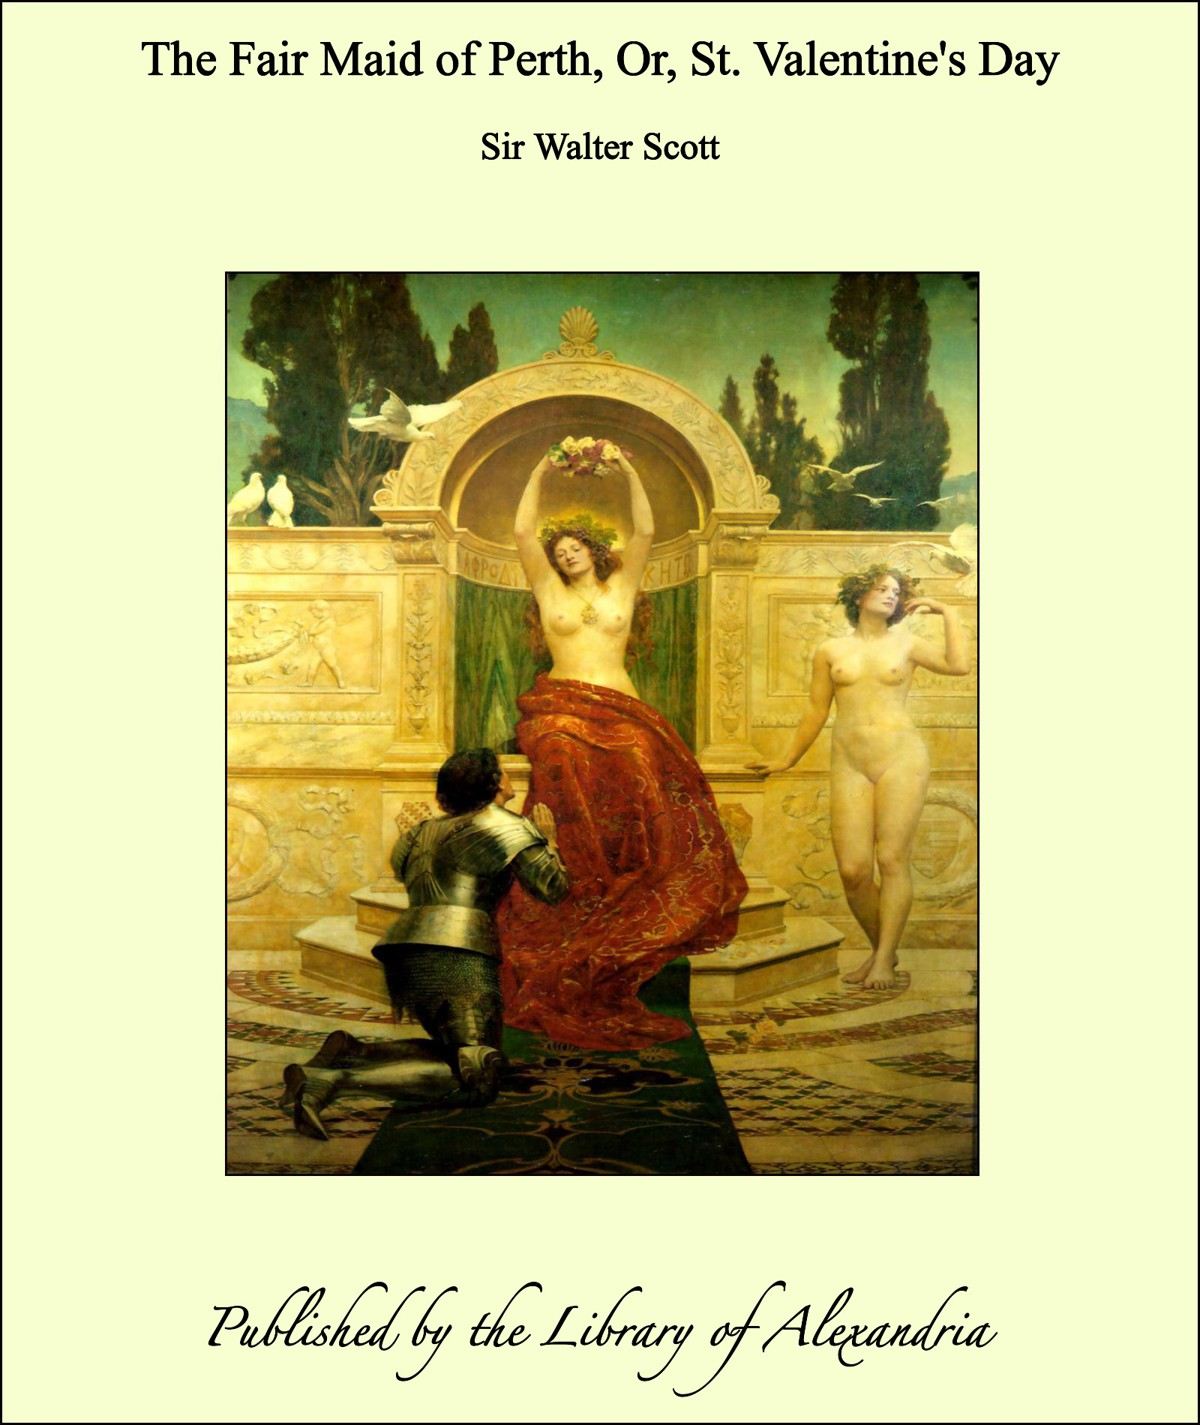 Sir Walter Scott - The Fair Maid of Perth, Or, St. Valentine's Day